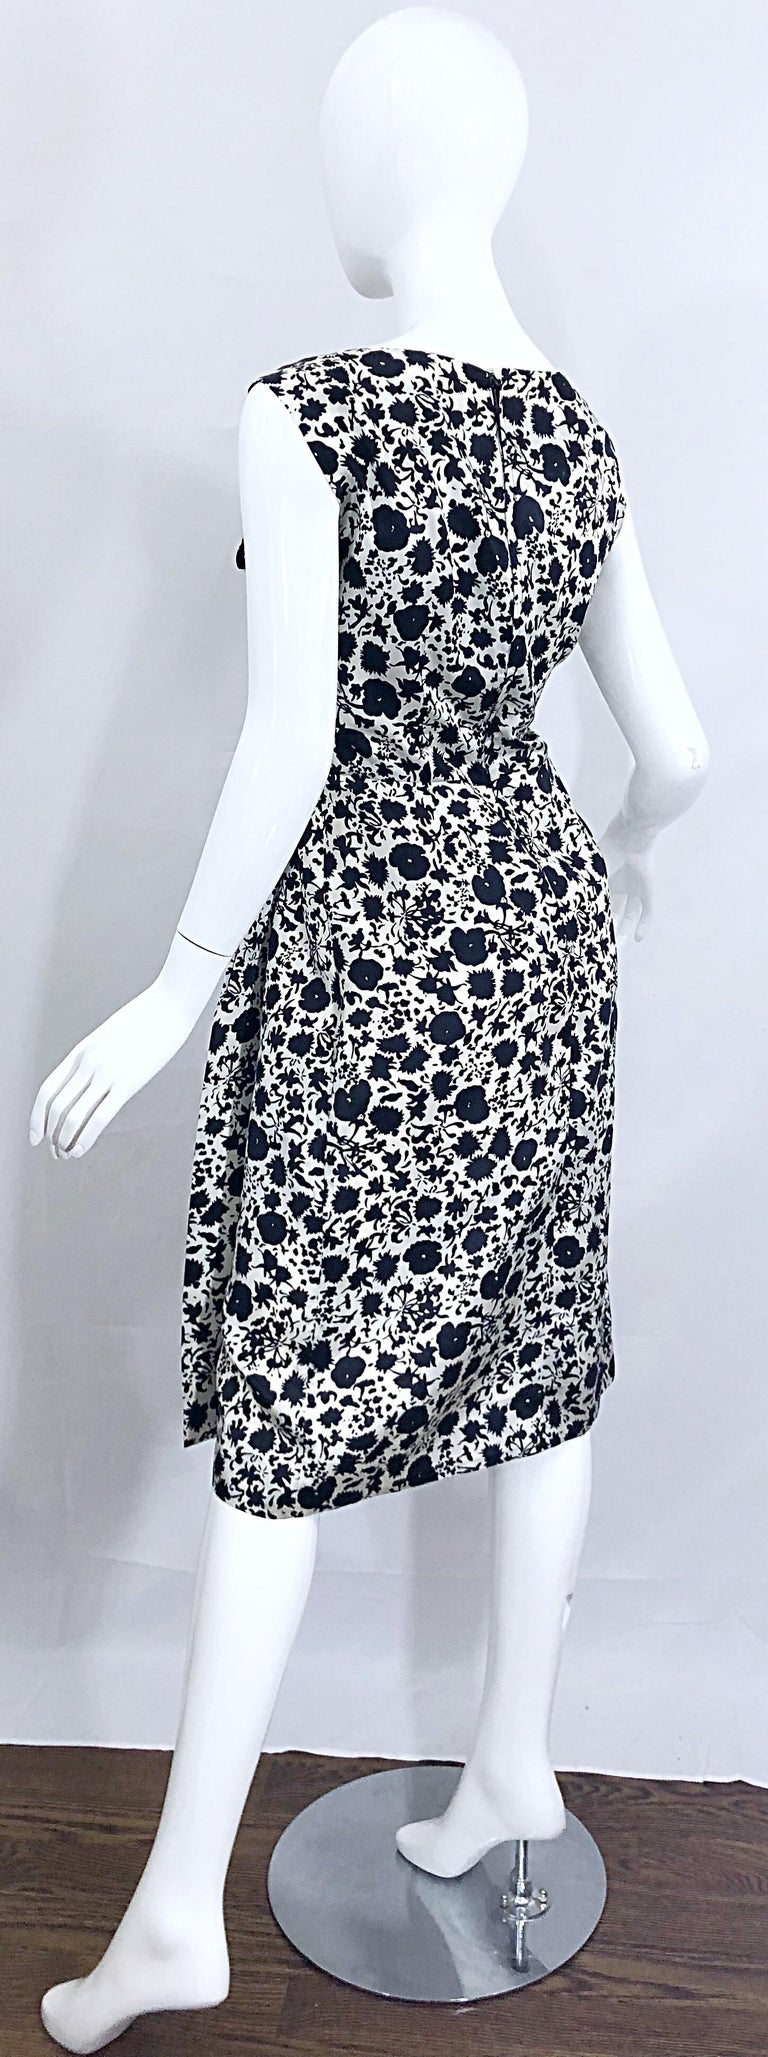 1950s House of Branell Black and White Silk Floral Vintage 50s Wrap Dress For Sale 9